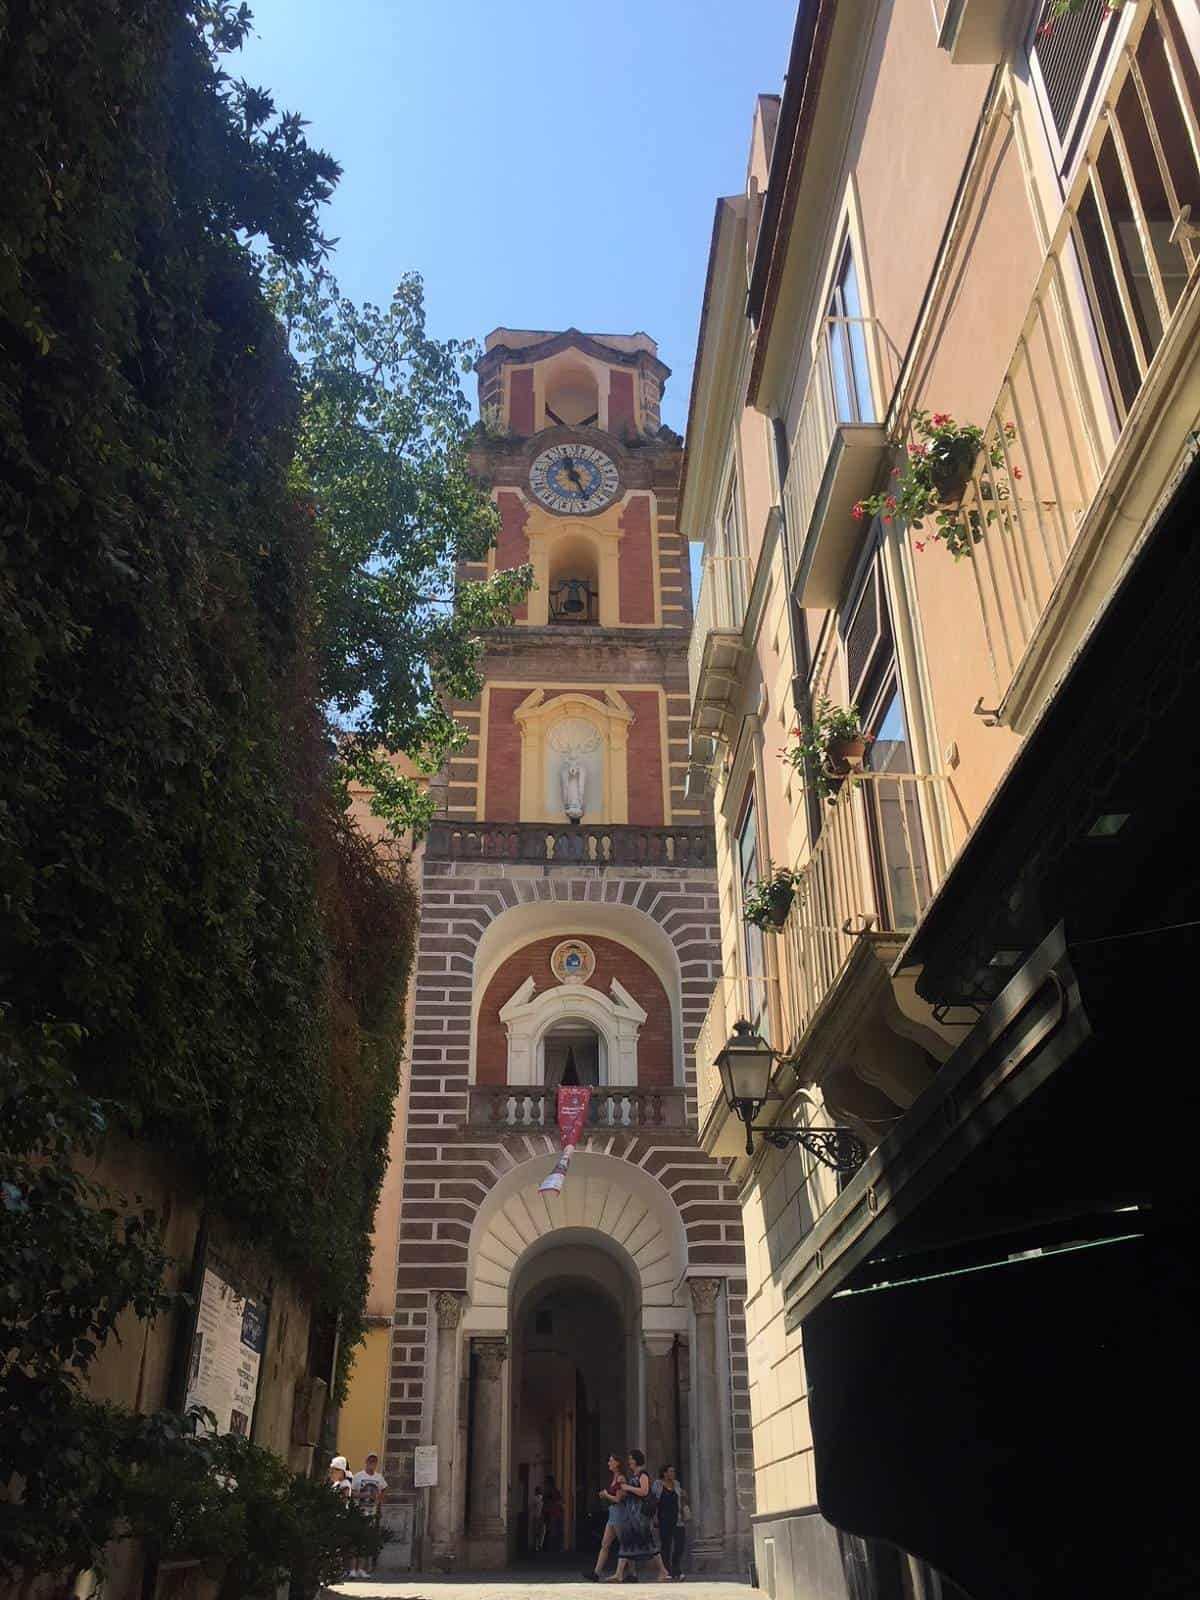 Sorrento's Duomo Bell Tower